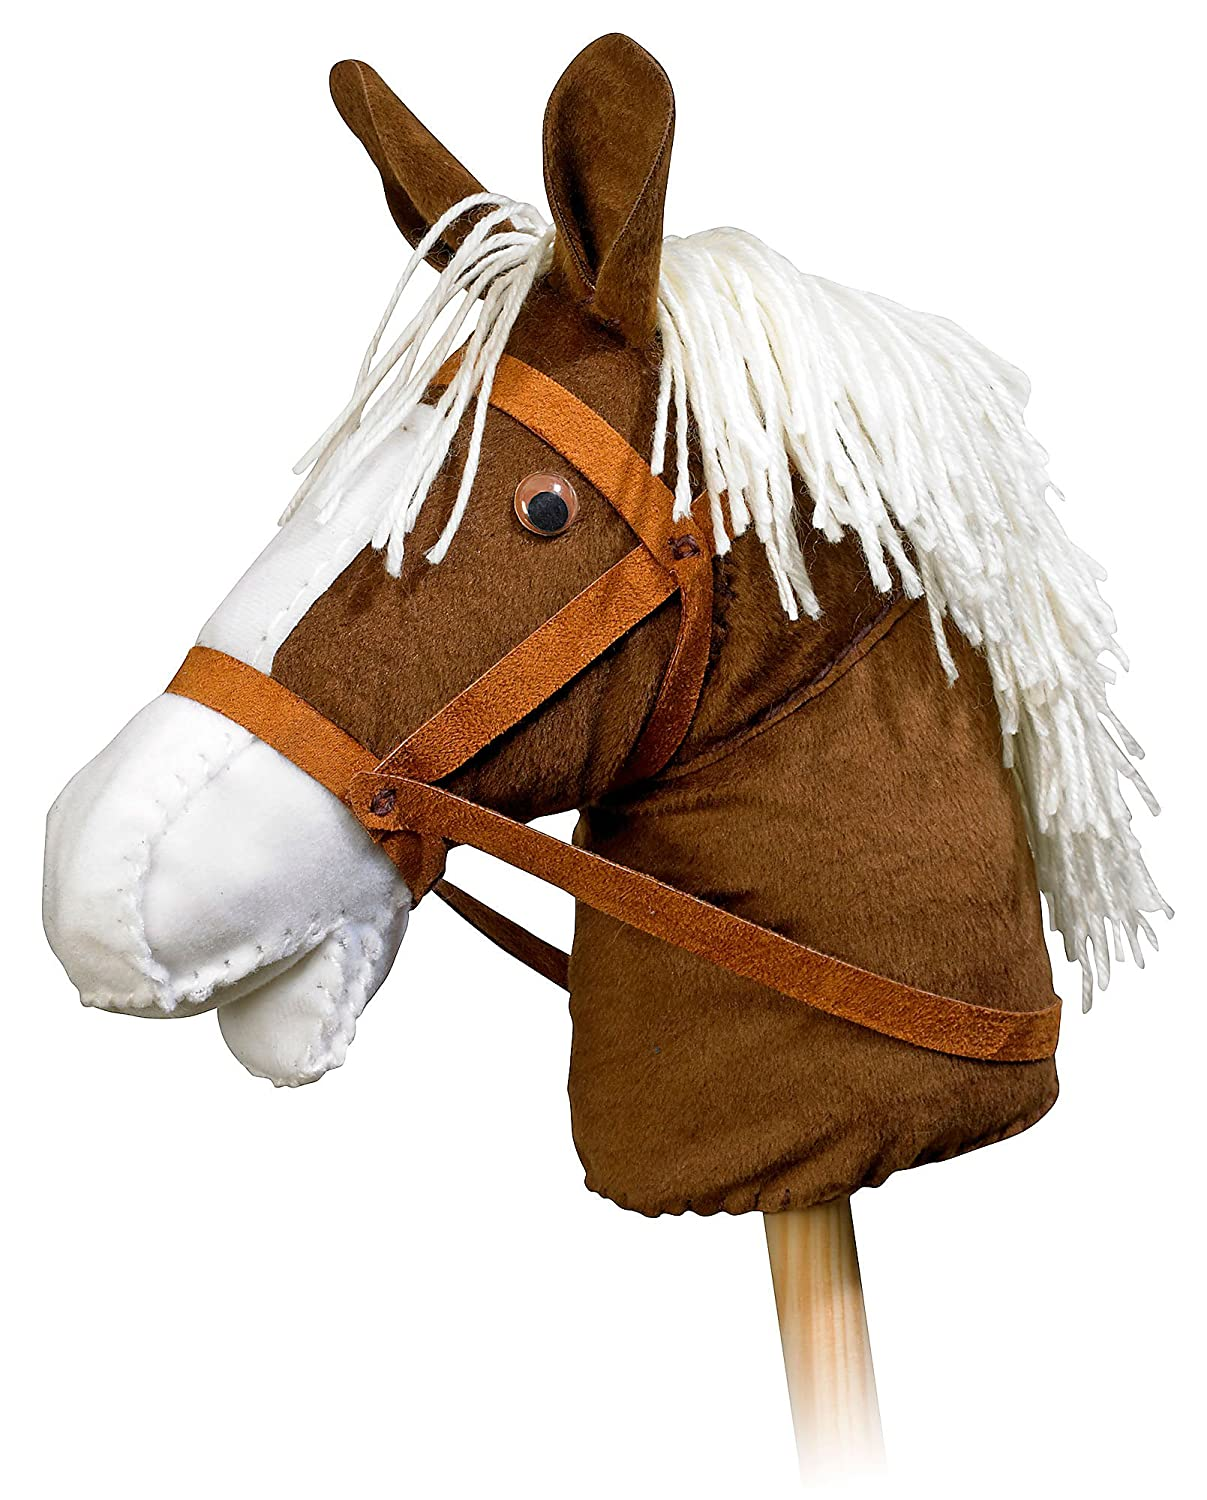 Busch Made by You 13050 Horse Kit Children's Craft Kit G1HQJ